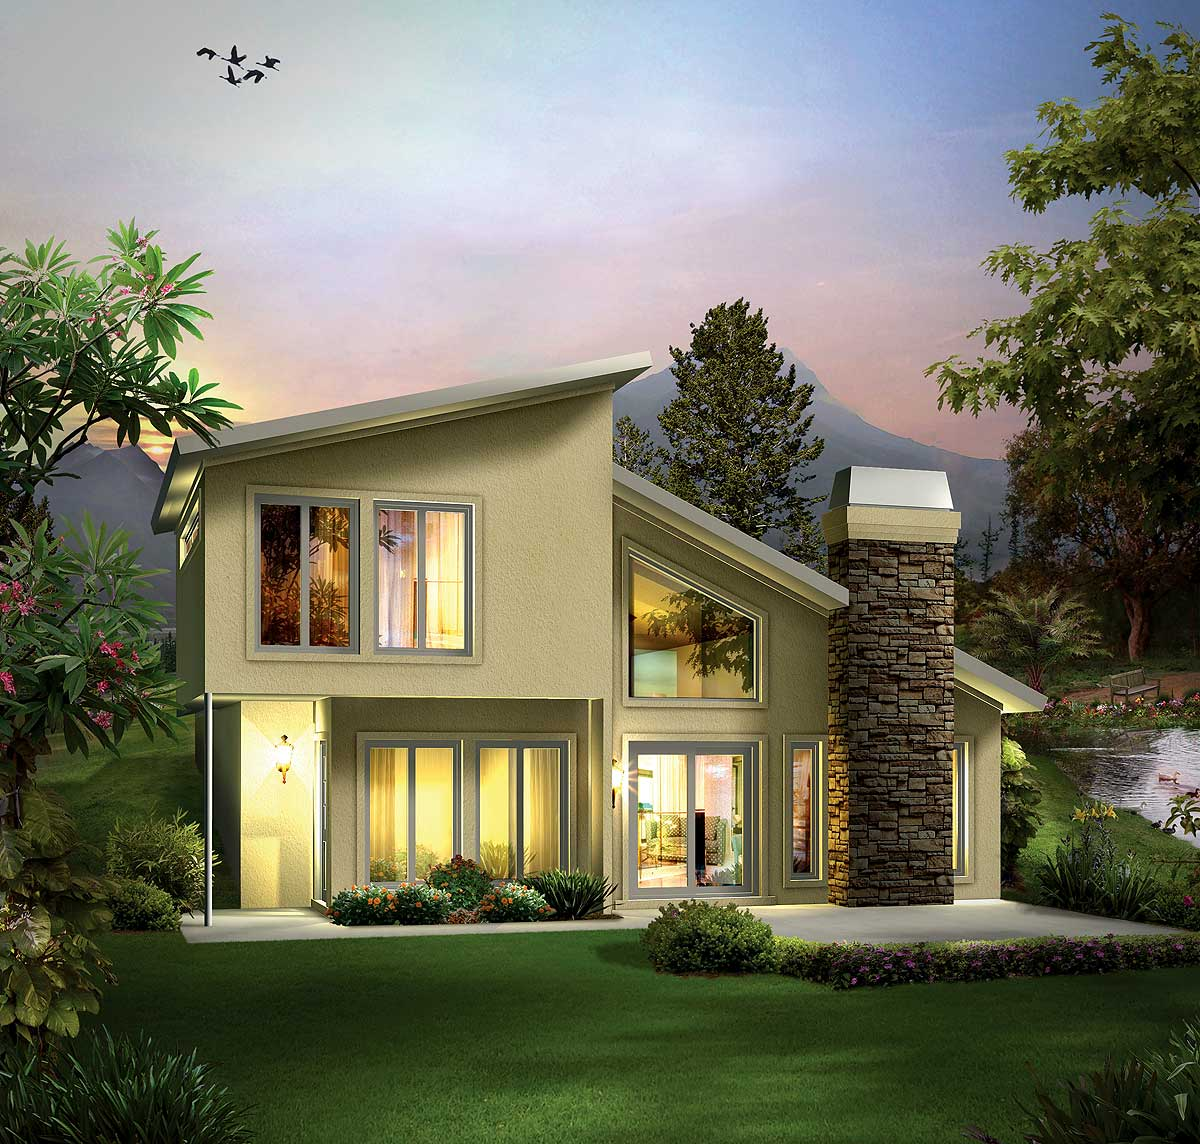 Earth sheltered berm home plan 57264ha 1st floor Earth bermed homes